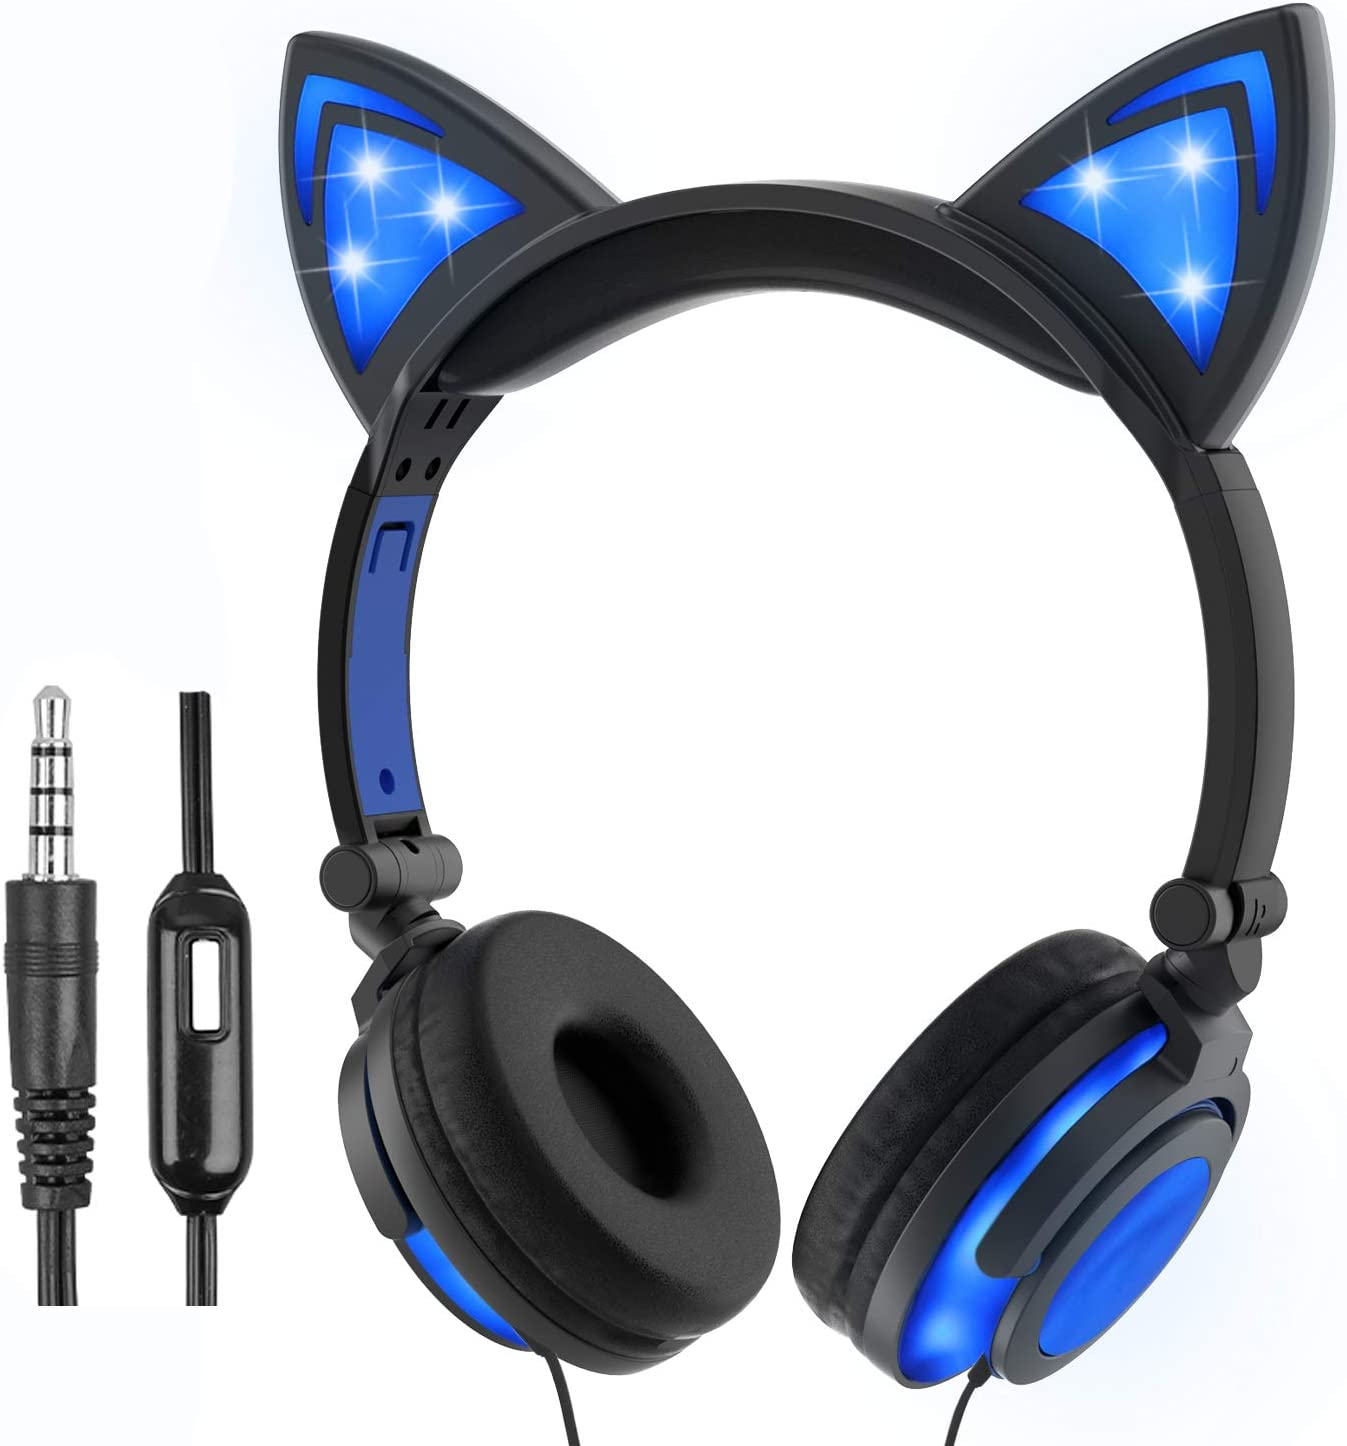 Olyre Cat Headphones for Girls Boys,Flashing LED Headphones with Microphone On Ear Universal Wired 3.5mm Stereo Headset for Computer Tablet iPad Mobile Phones(Blue)